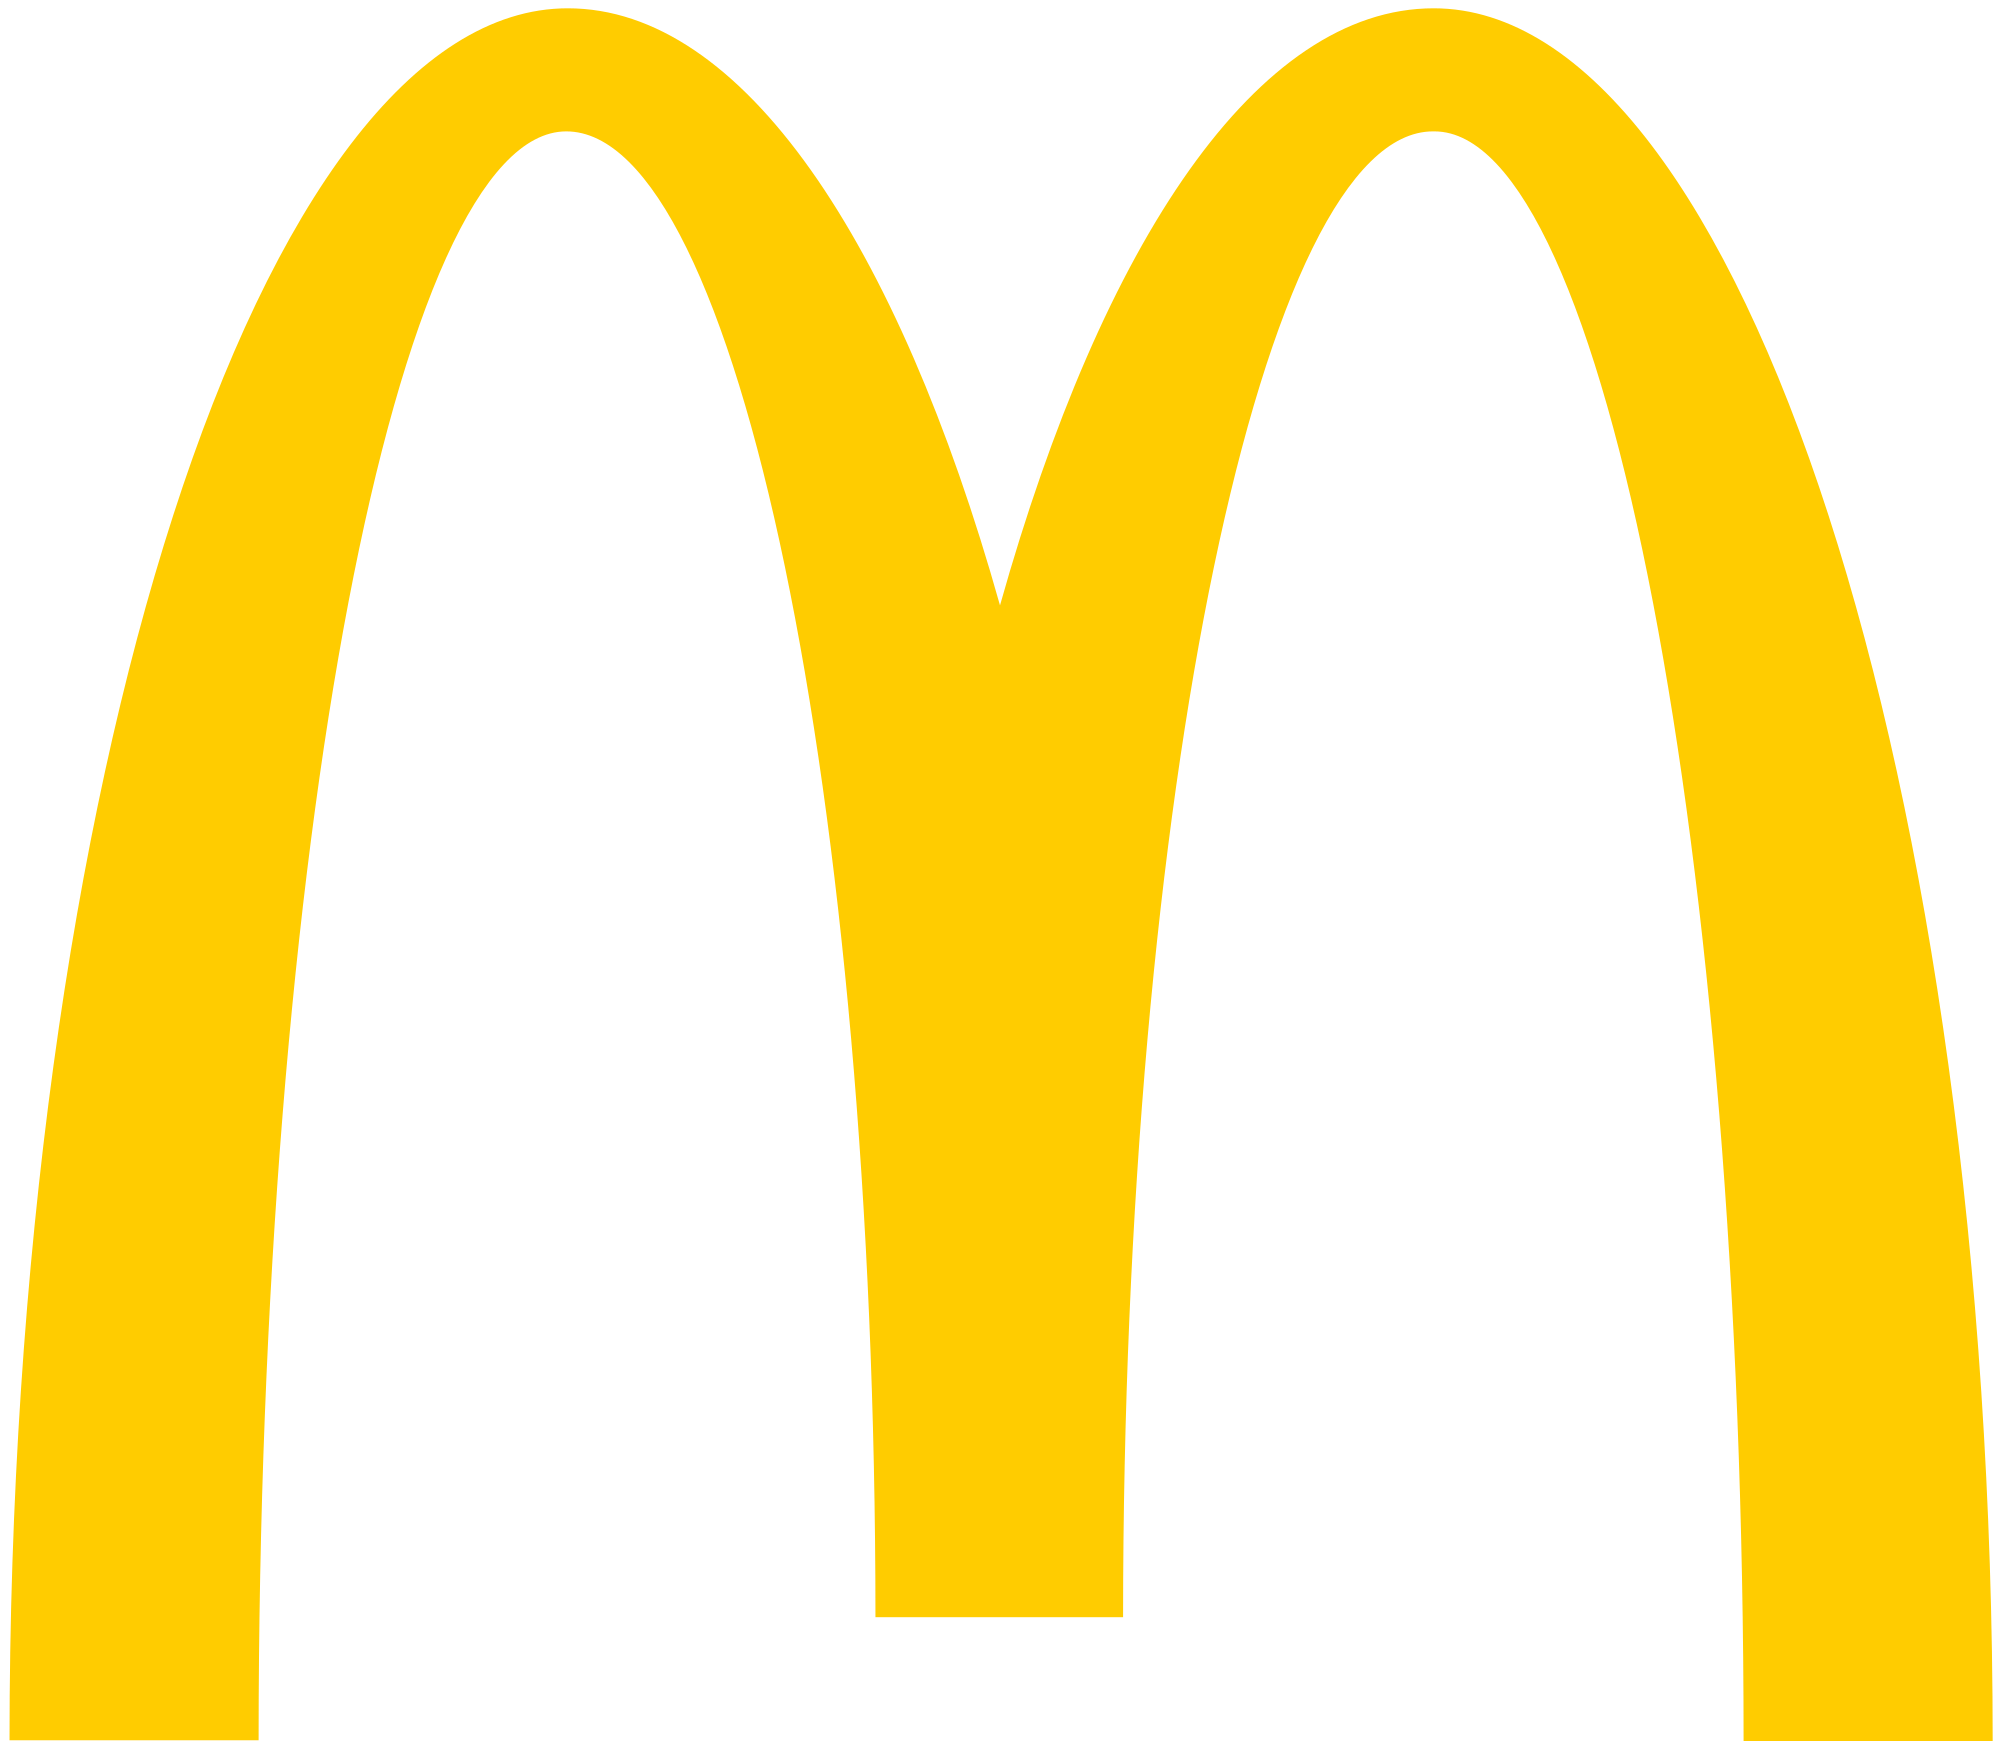 Mcdonalds clipart golden arches, Mcdonalds golden arches.